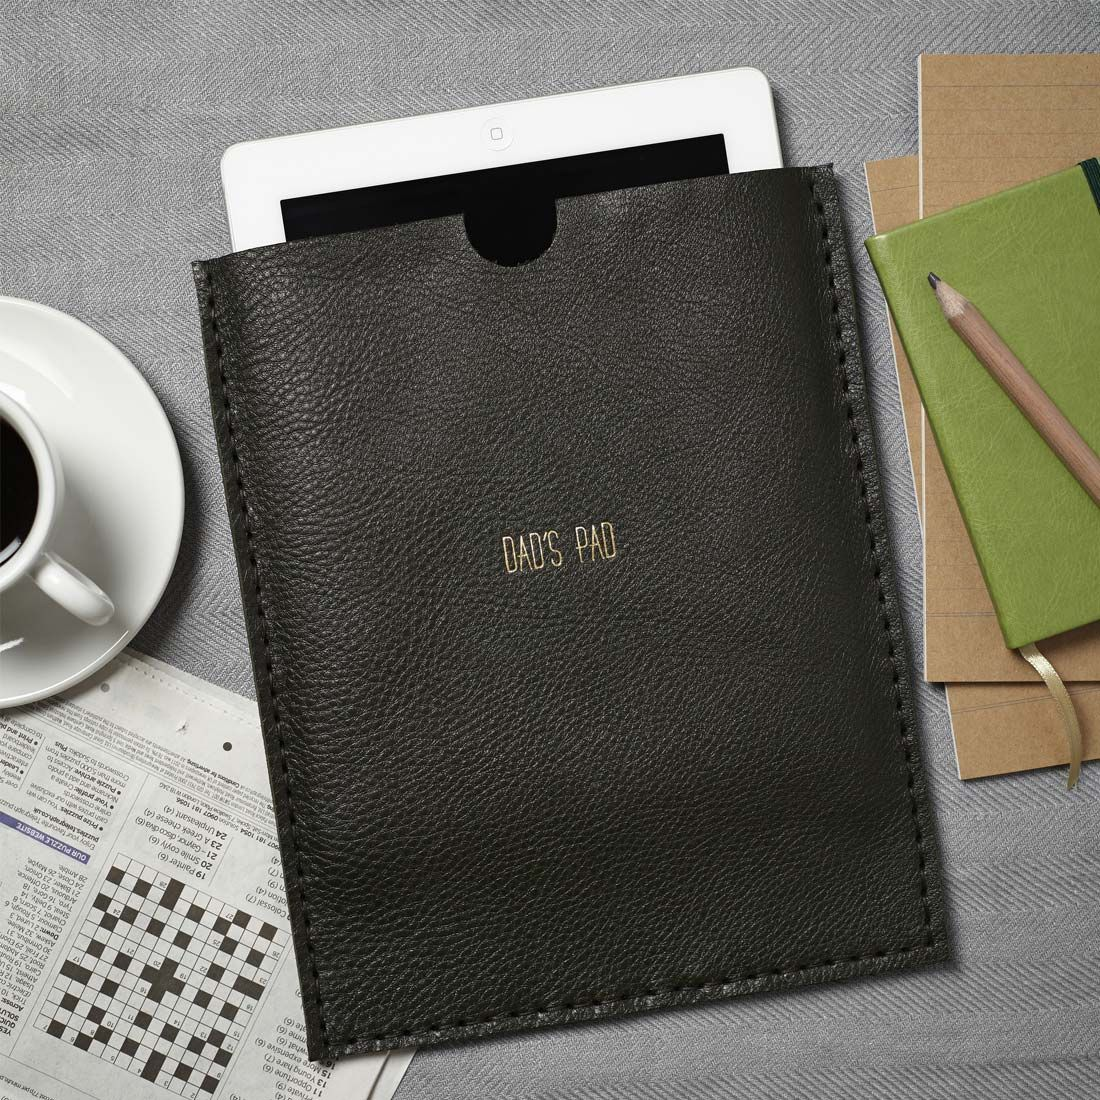 A handmade leather iPad case that can be personalised for the perfect gift idea.